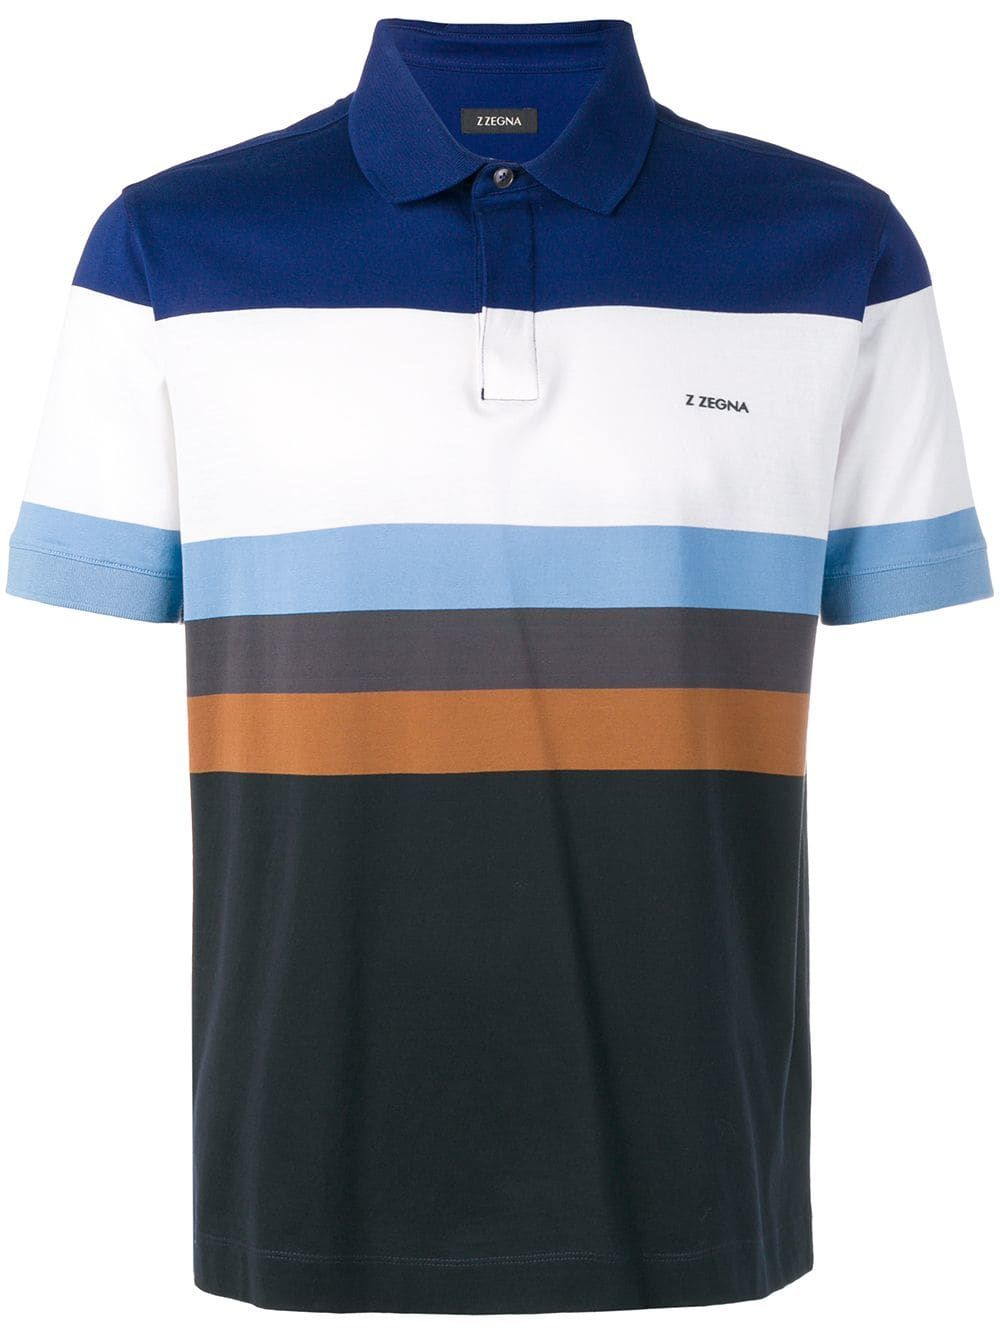 00a0ce38 Z Zegna colour block polo shirt - Blue | Products in 2019 ...